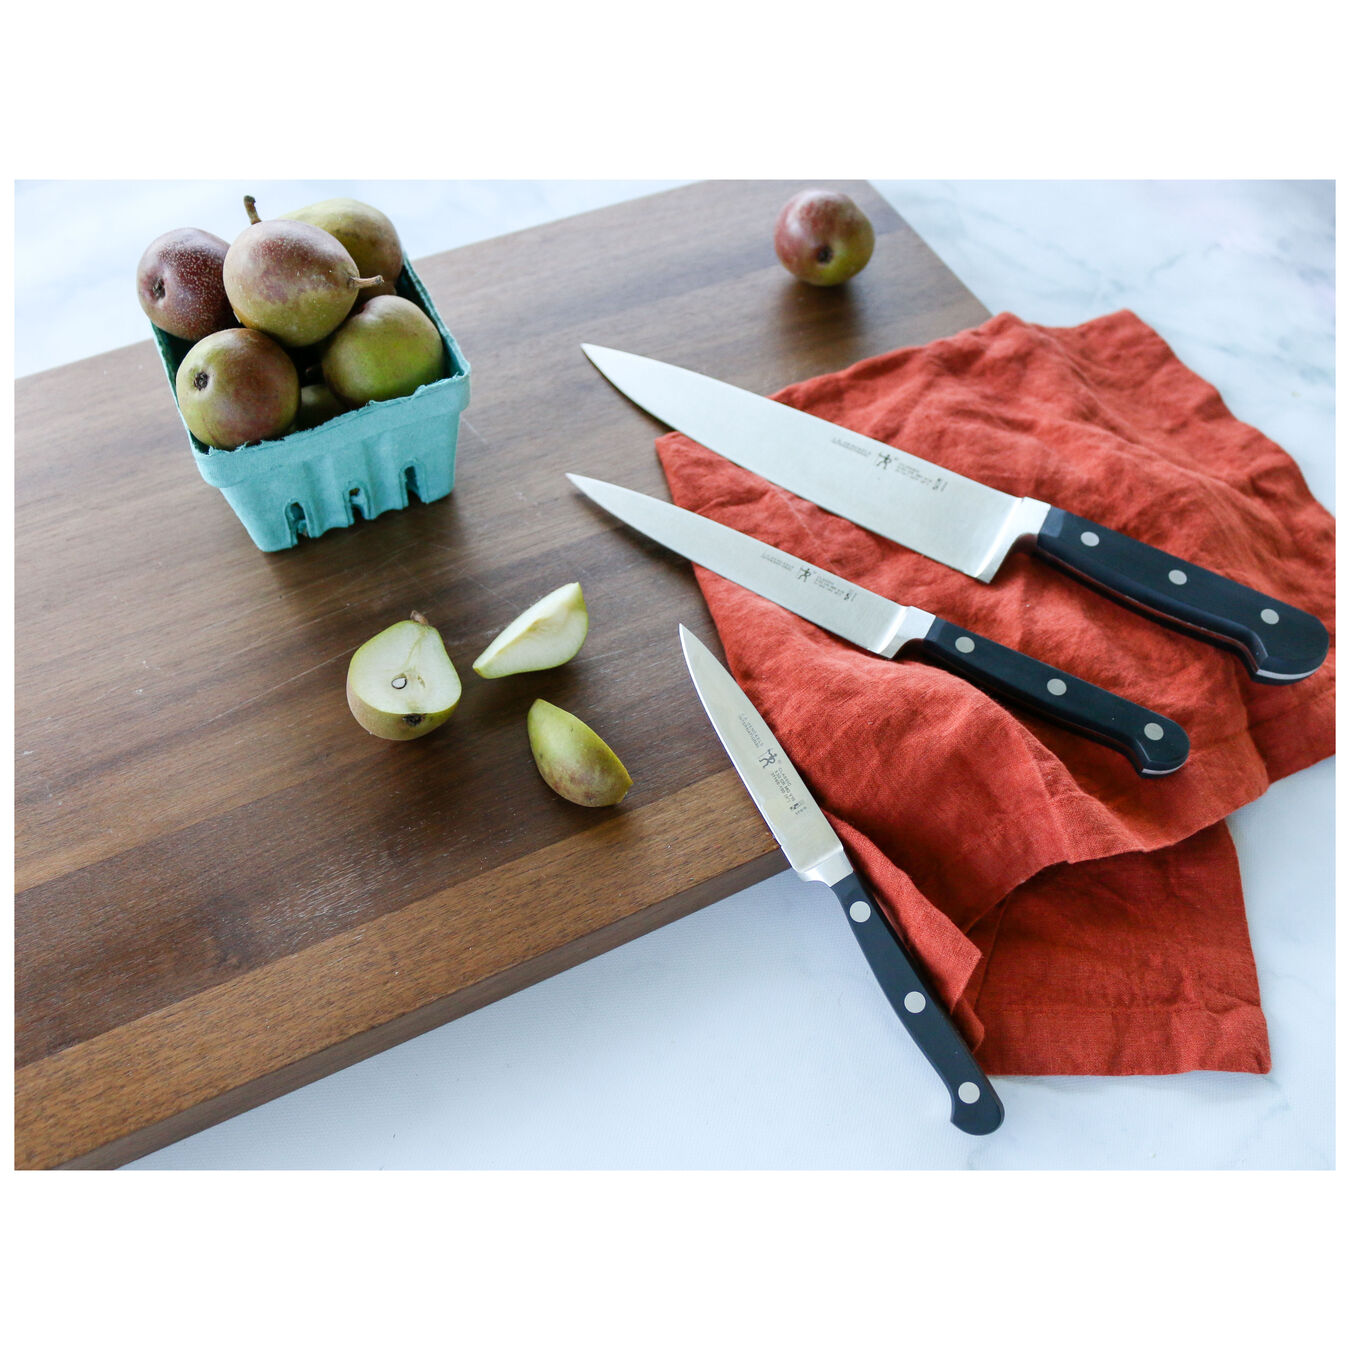 3-pc Starter Knife Set,,large 2